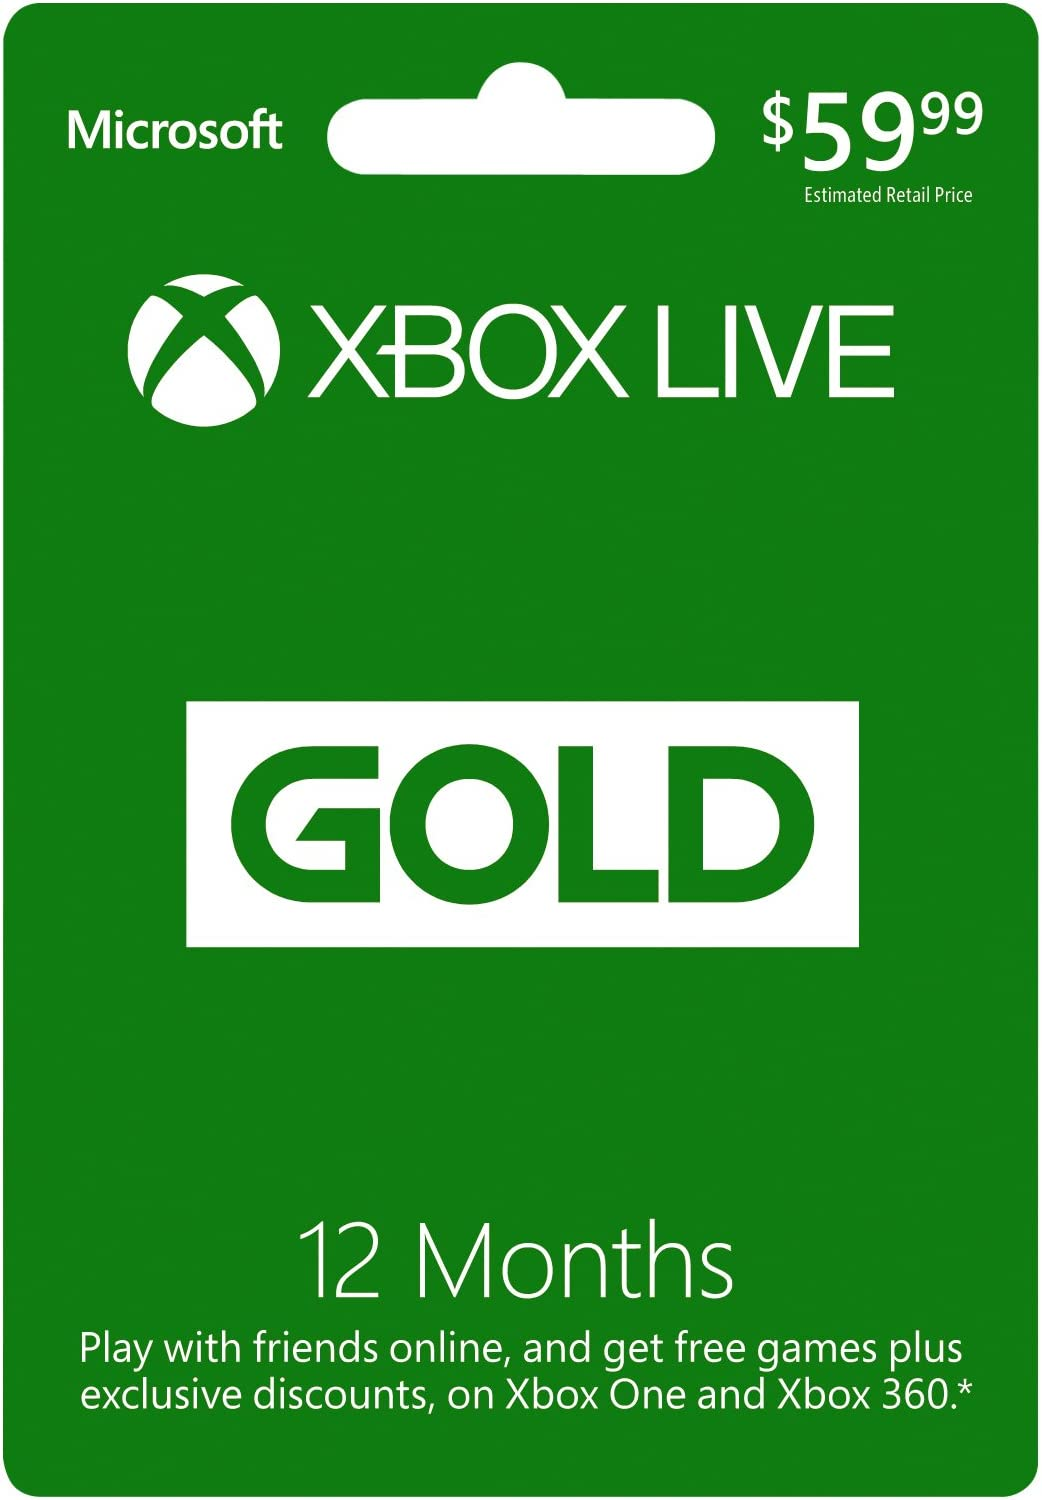 Amazon.com: Microsoft Xbox LIVE 12 Month Gold Membership ...